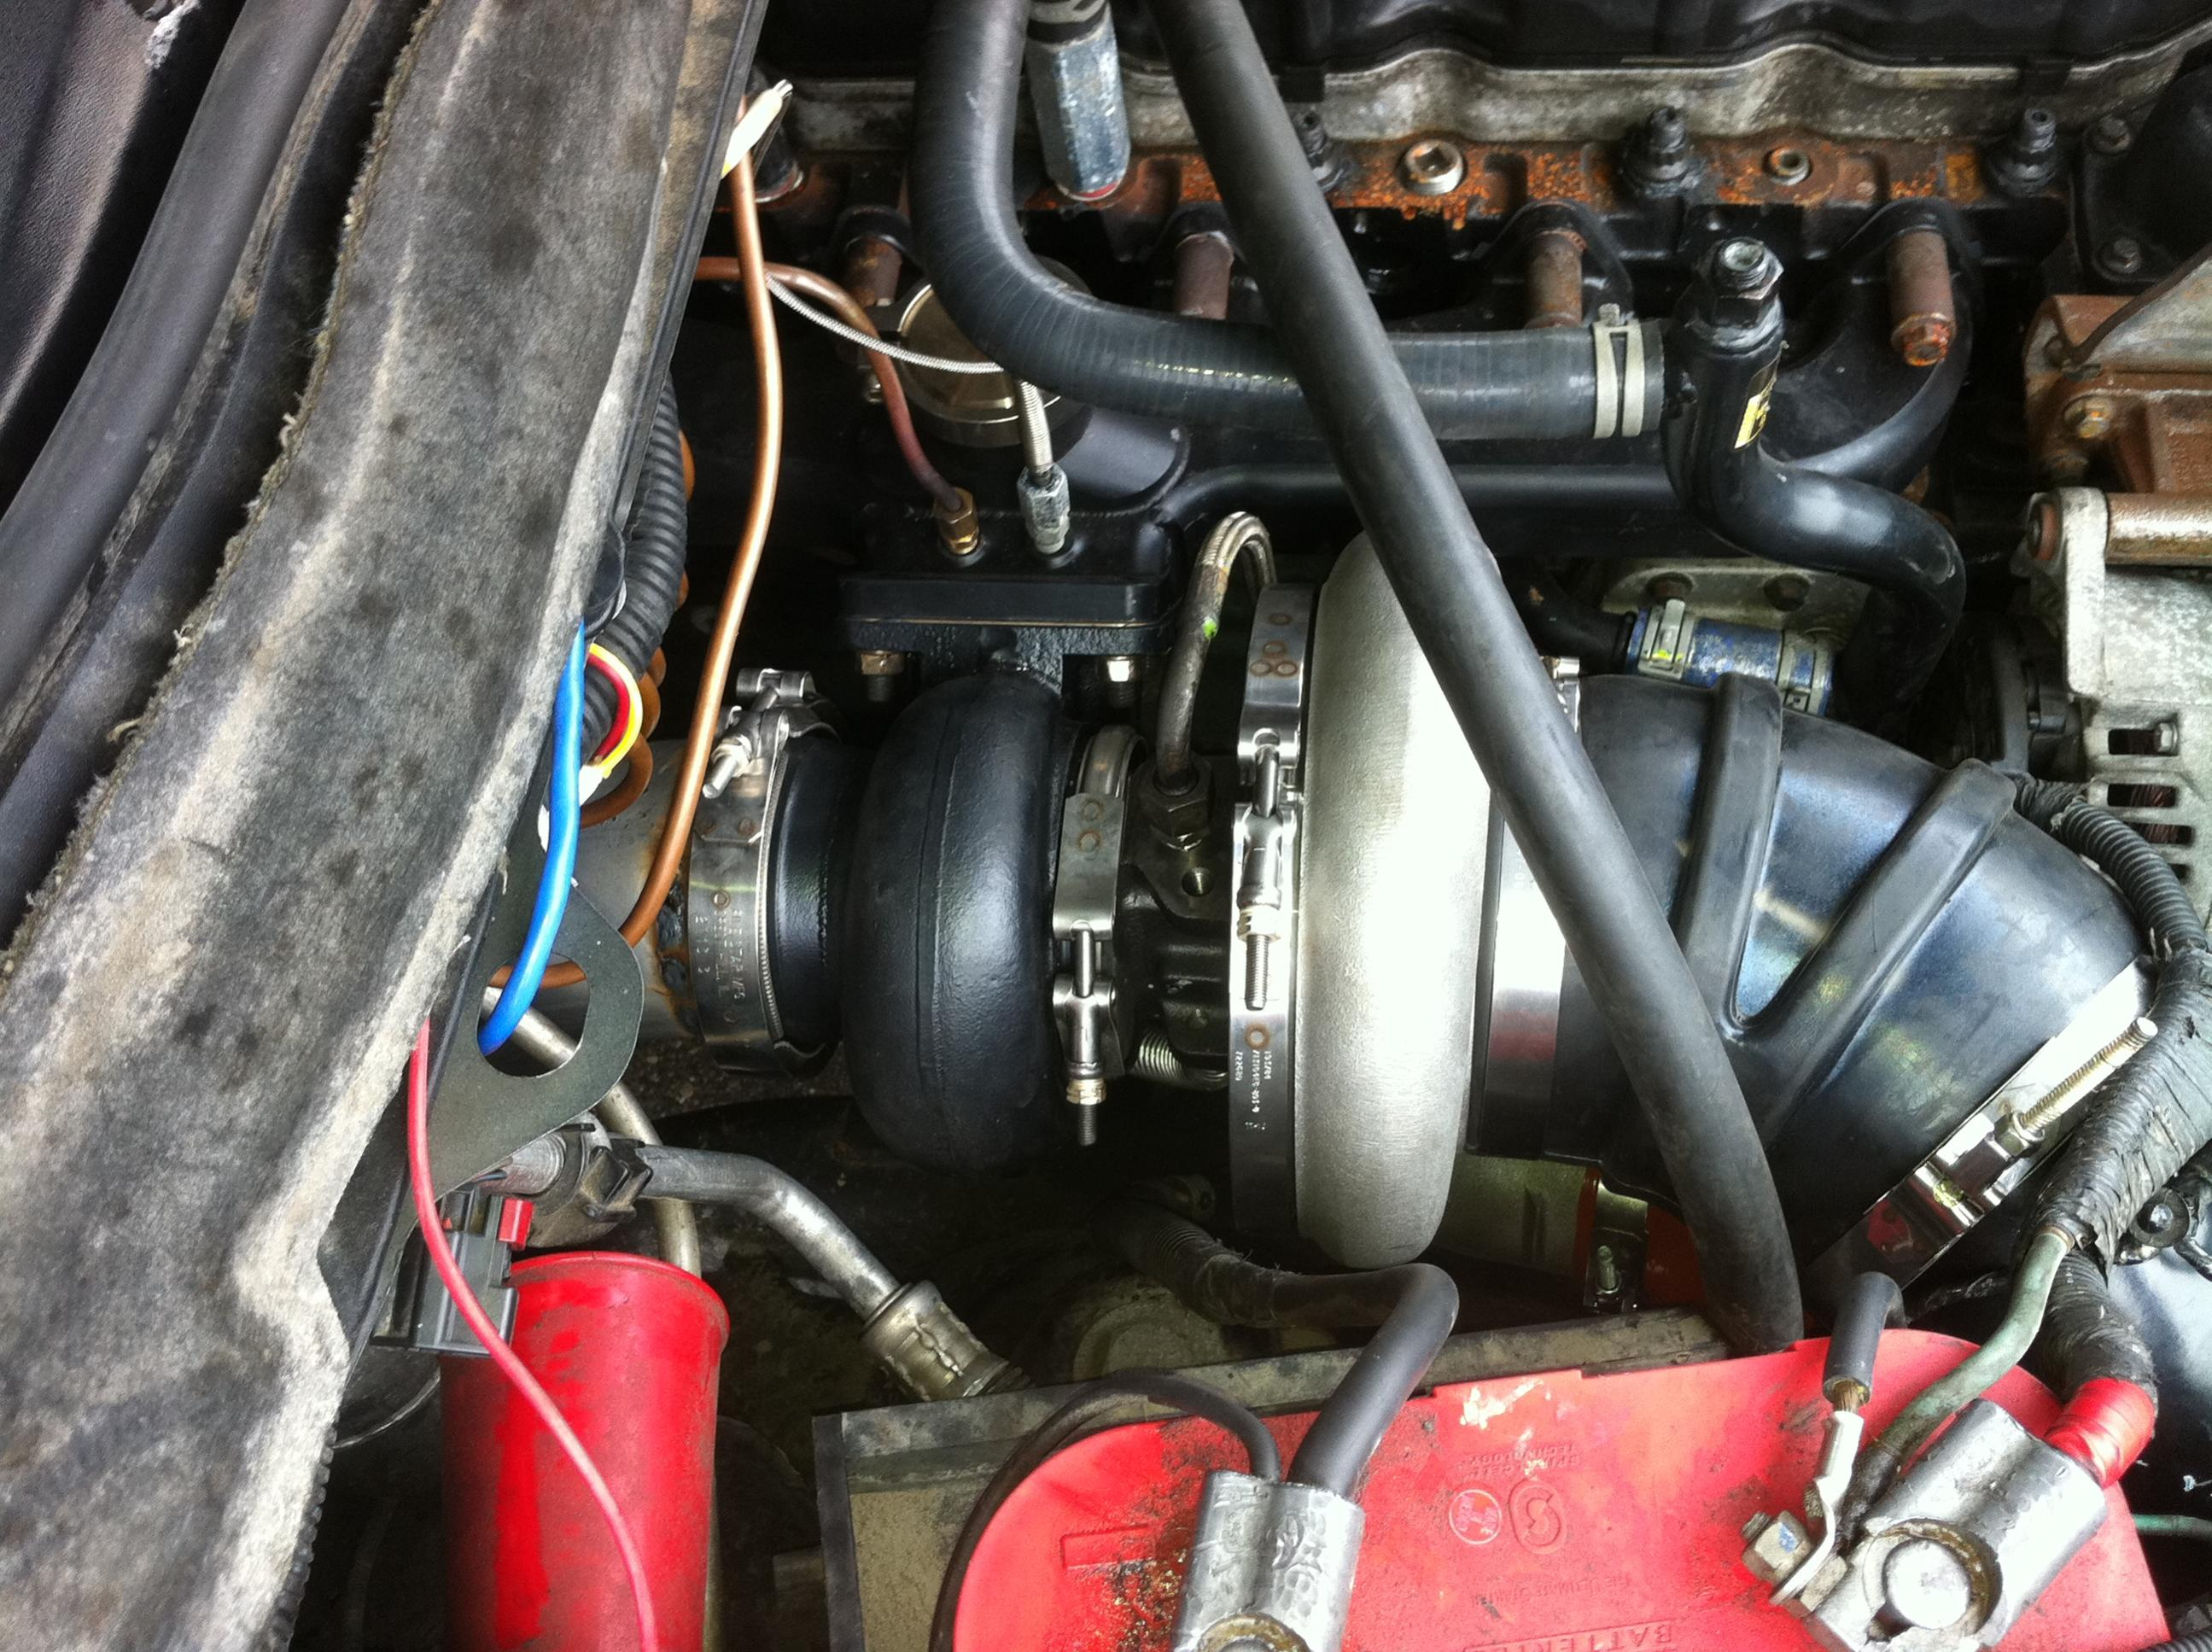 S478 T4 - New / Used Motor Build....-005.jpg